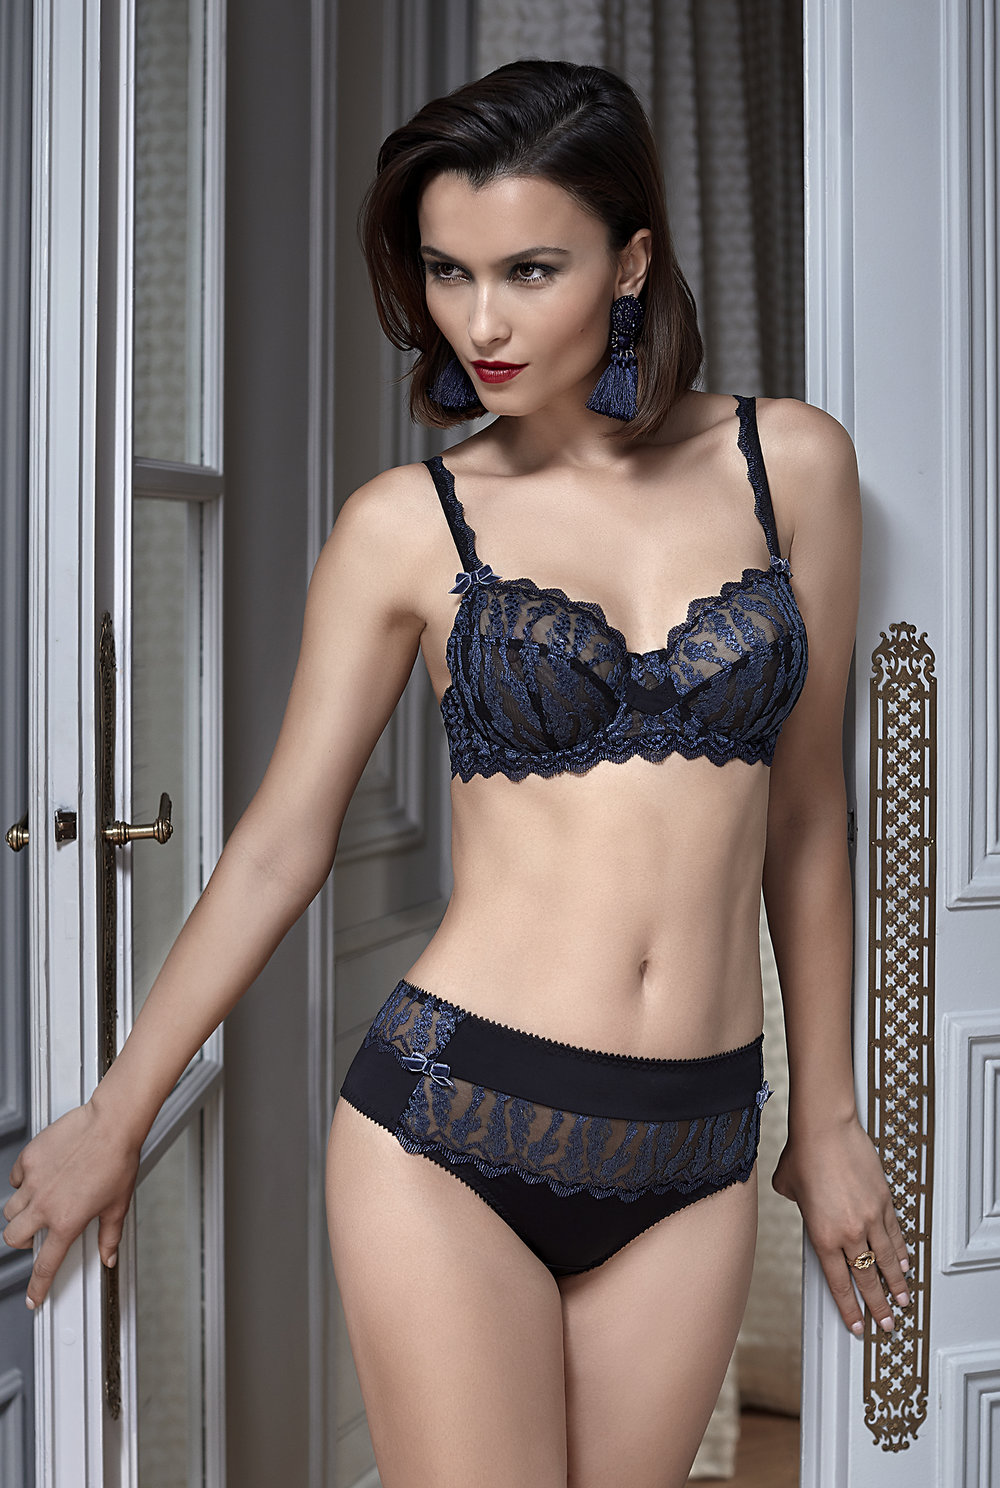 Passion Secrète   full-coverage balconnet, sizes 100 c ; 85 to 100 d, e, f : $97  Shorty, sizes 36 to 46 : $59